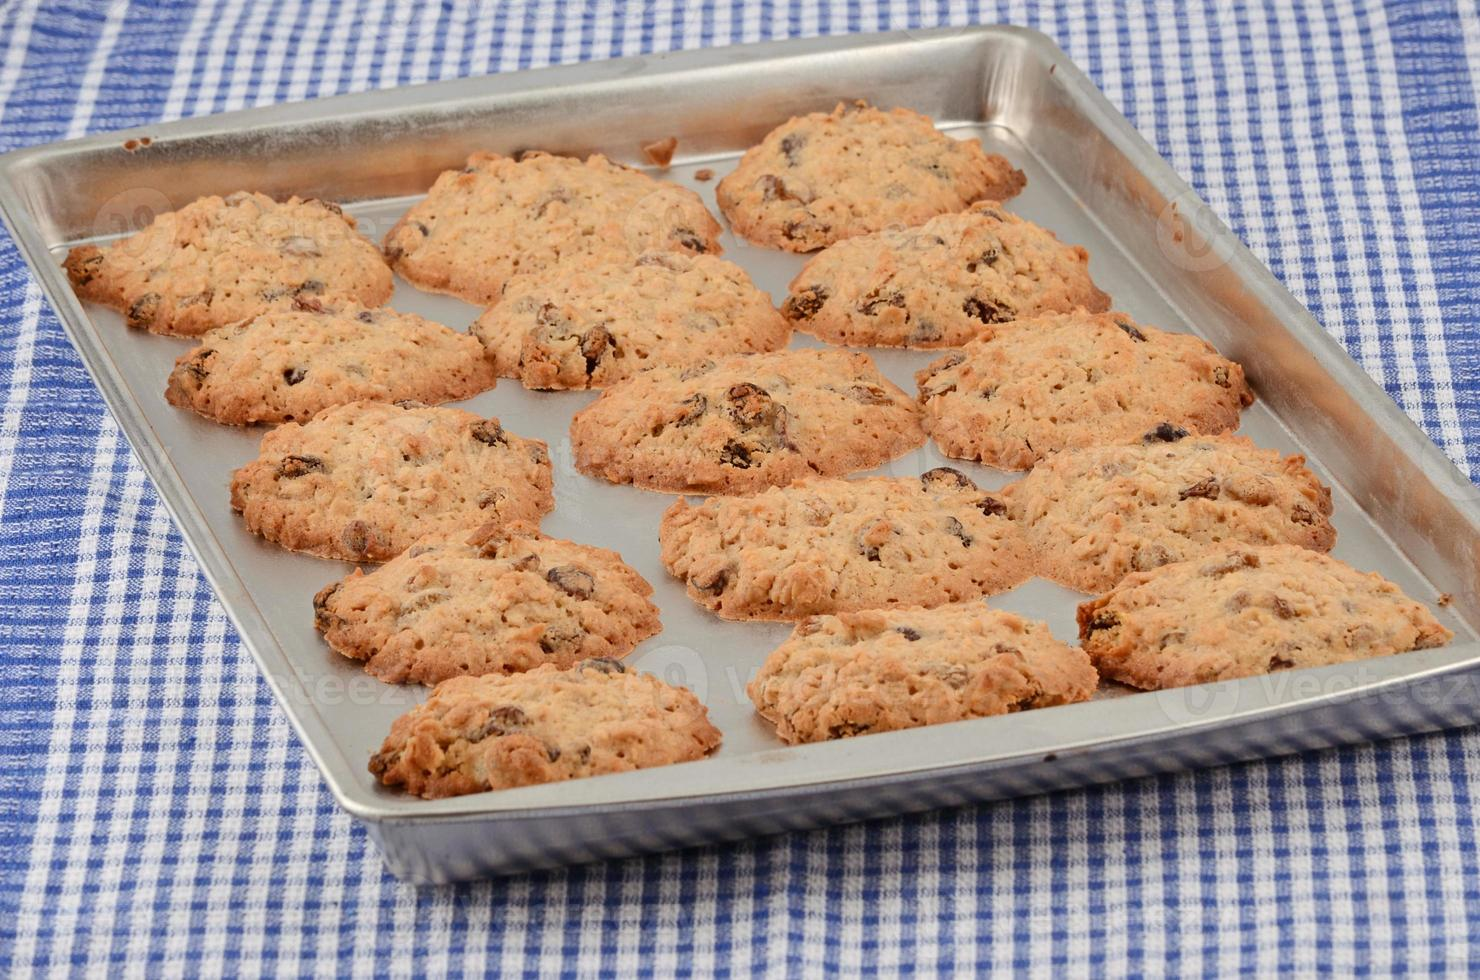 Hot baked cookies photo